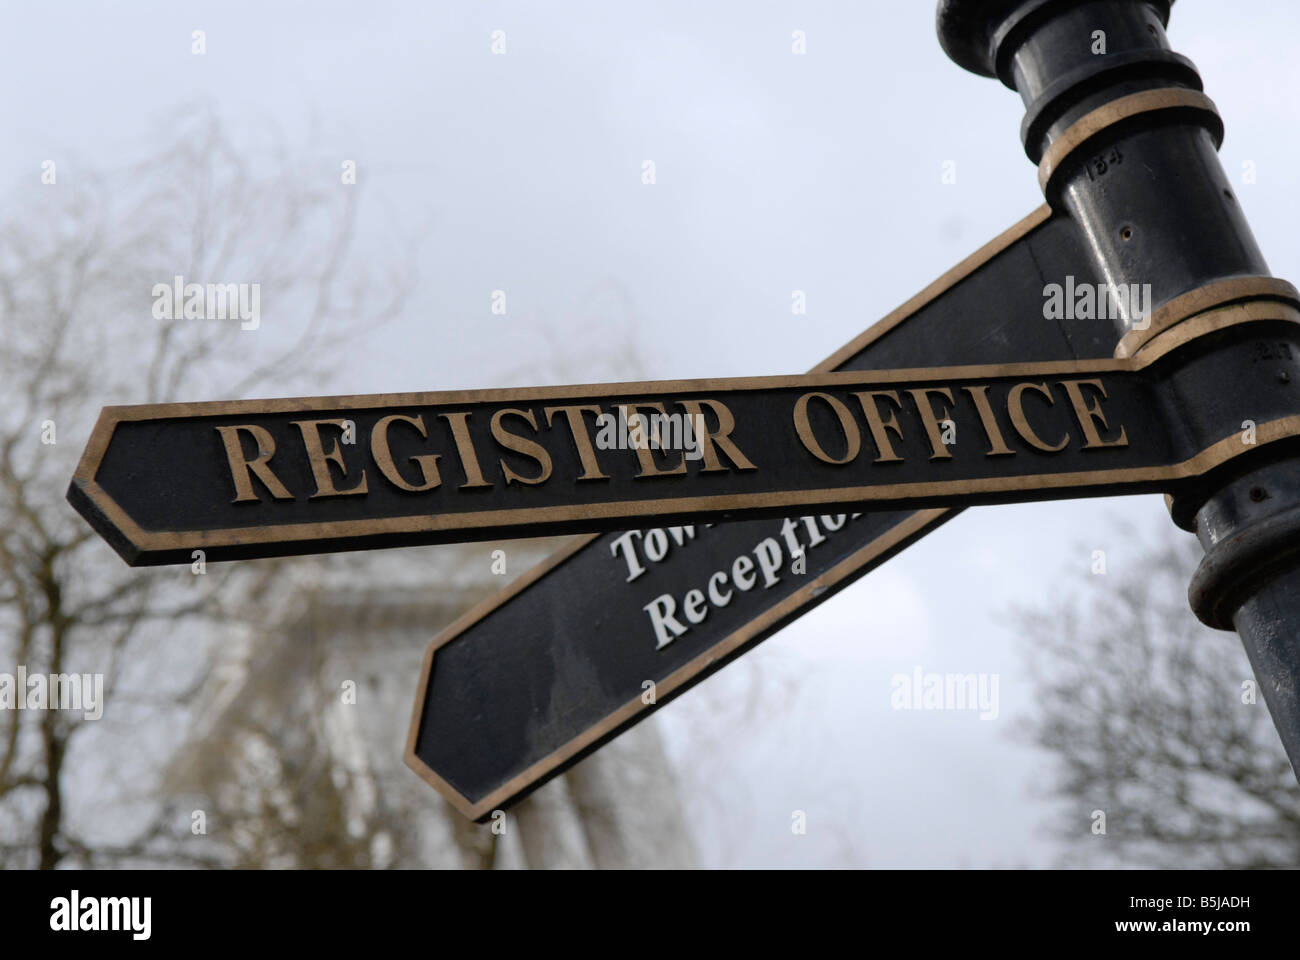 Sign pointing to Register Office Stock Photo